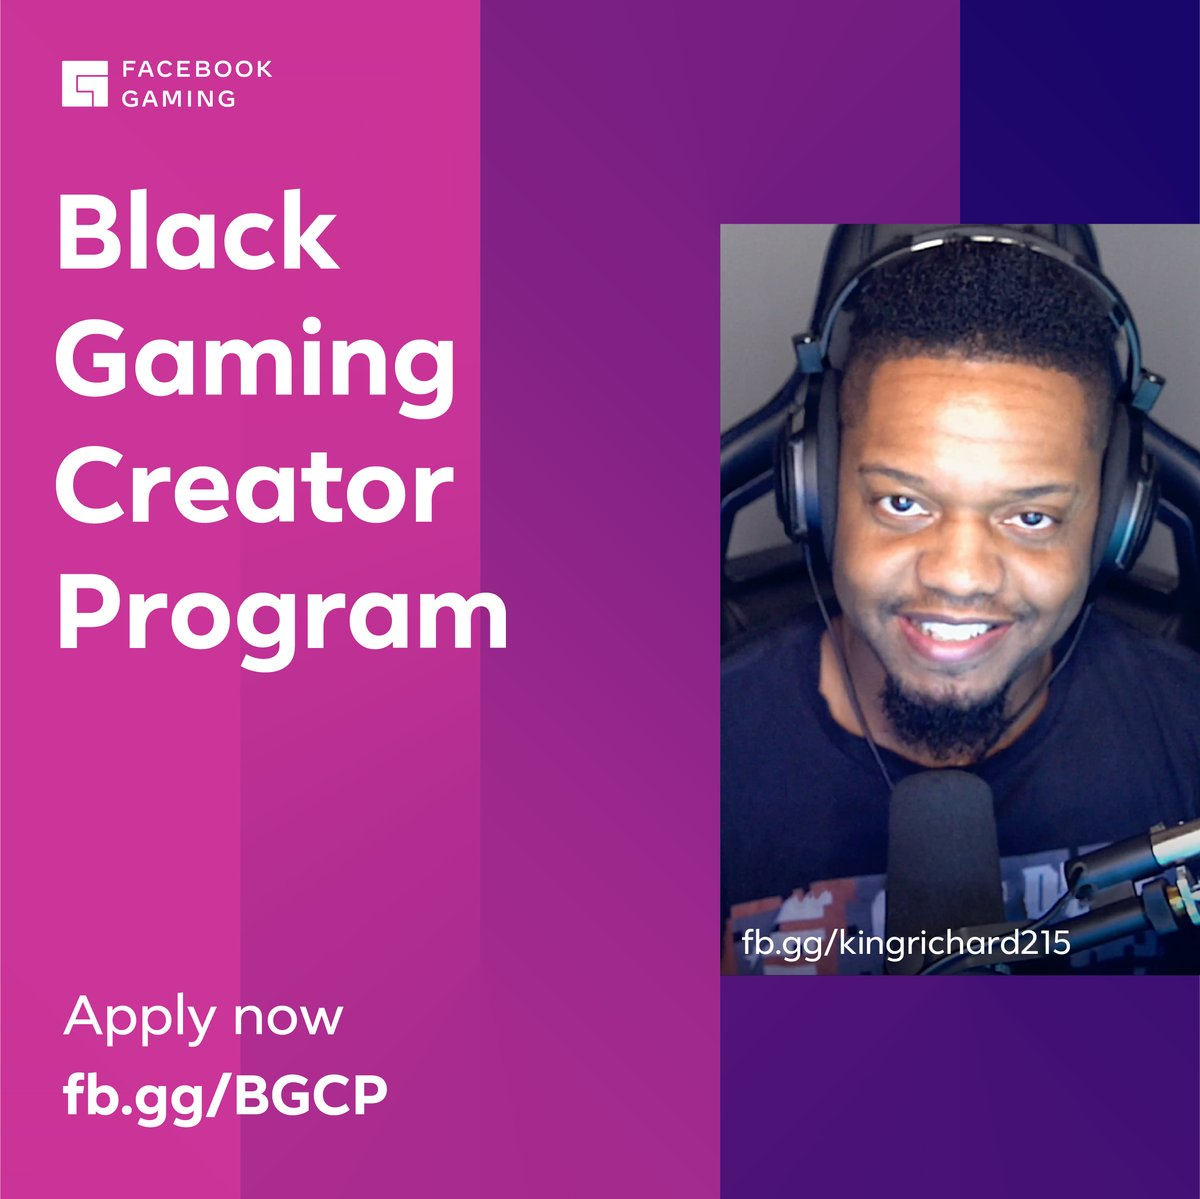 1/ Today I'm thrilled to share that #FacebookGaming is committing $10 million over two years to support the Black gaming creator community. This is part of our company-wide commitment to support Black and diverse communities in the US.